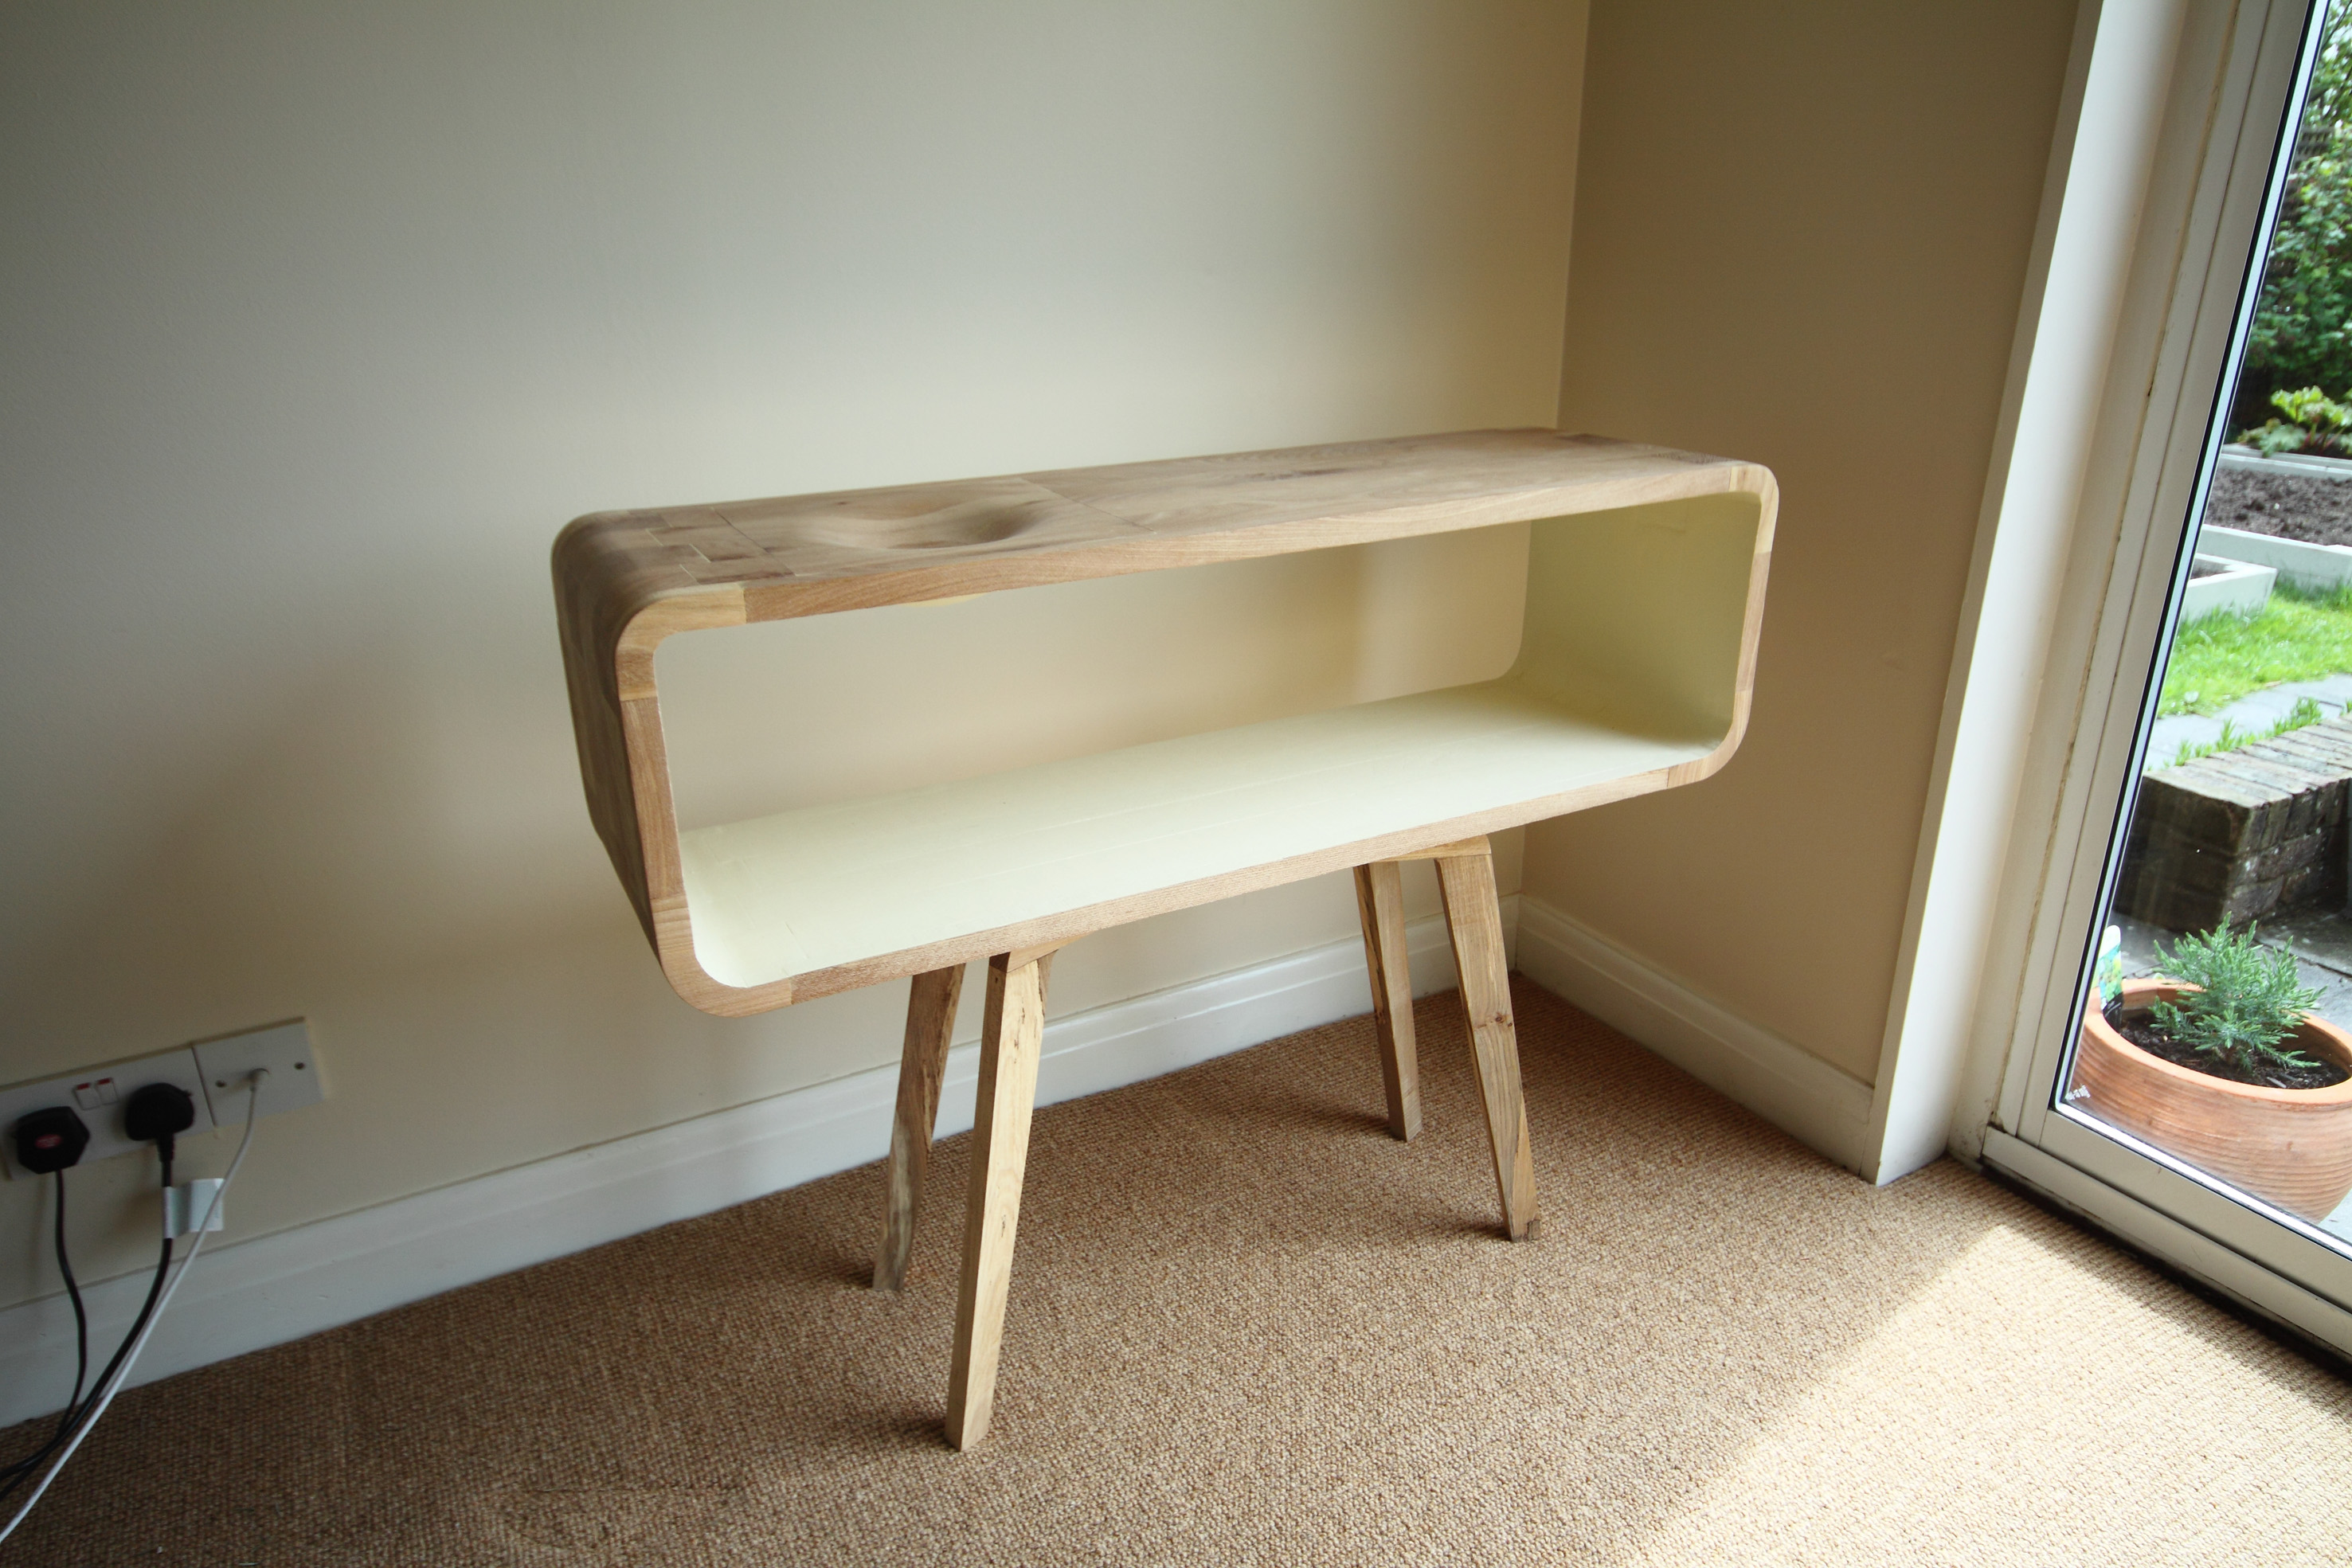 50's Inspired Sideboard with integral bowl